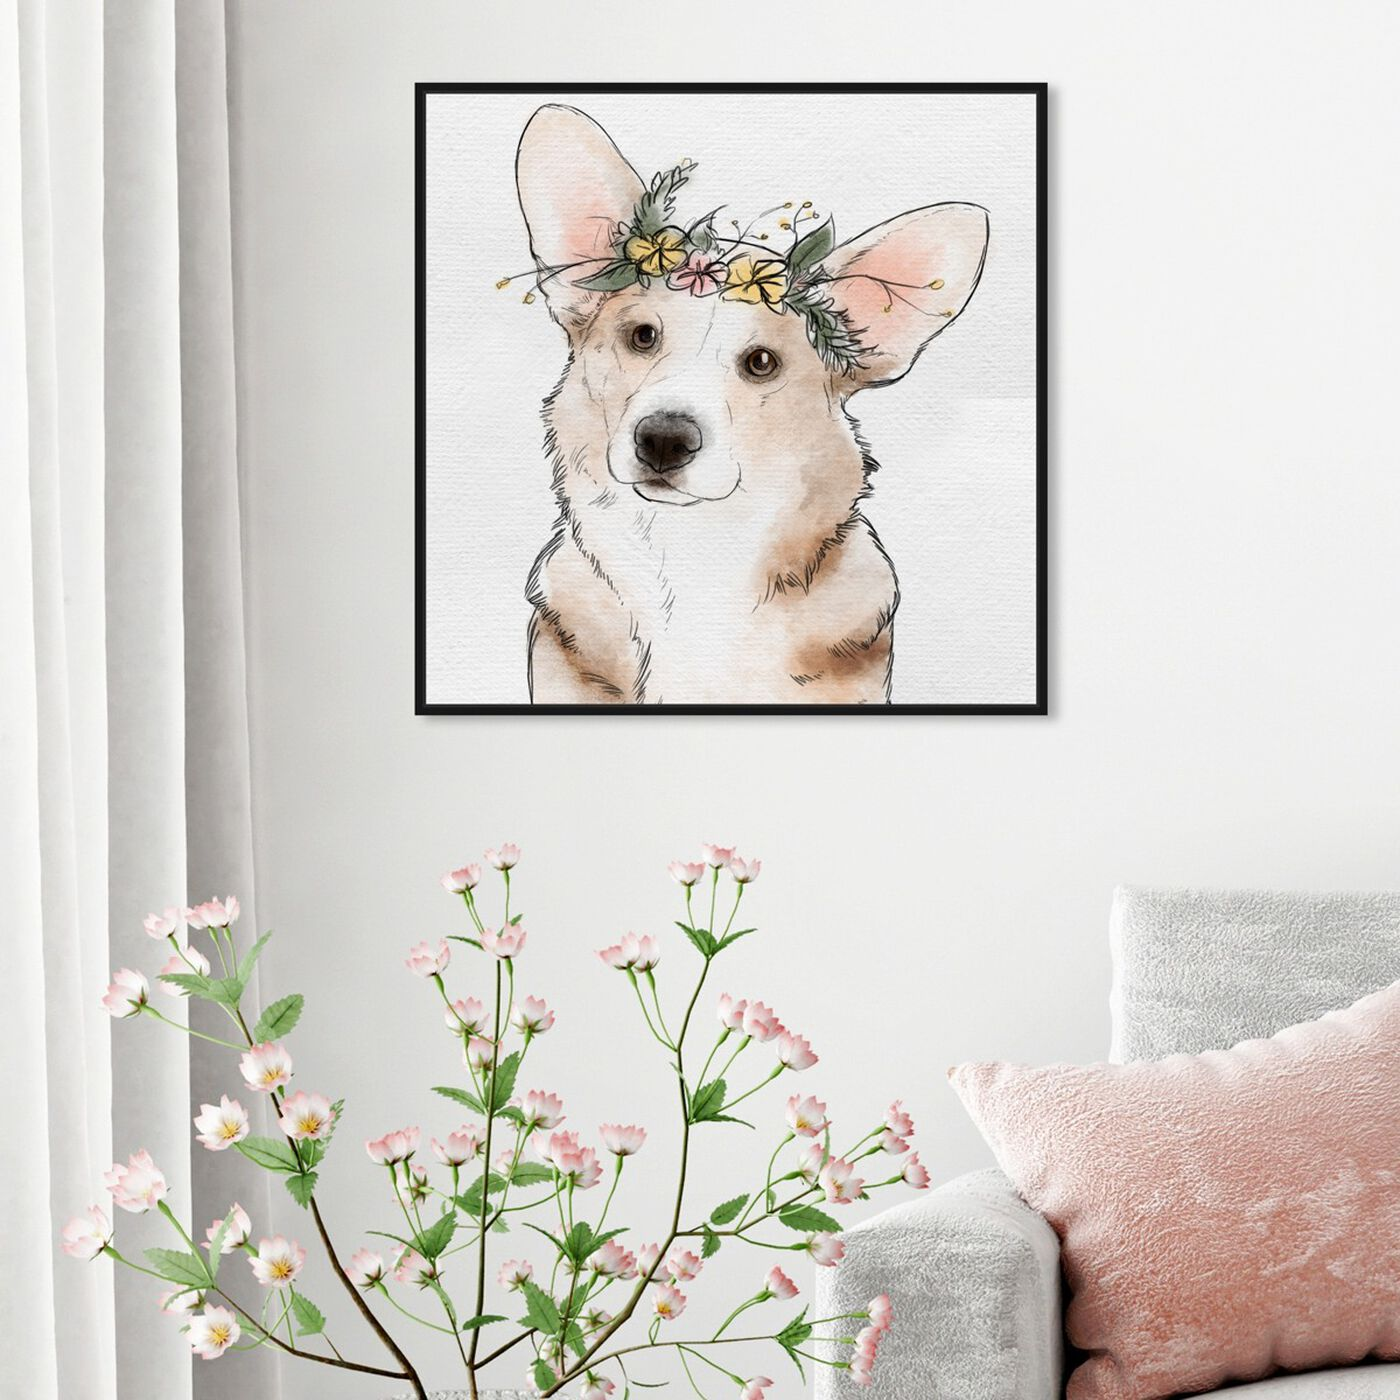 Hanging view of Floral Crown Corgi featuring animals and dogs and puppies art.